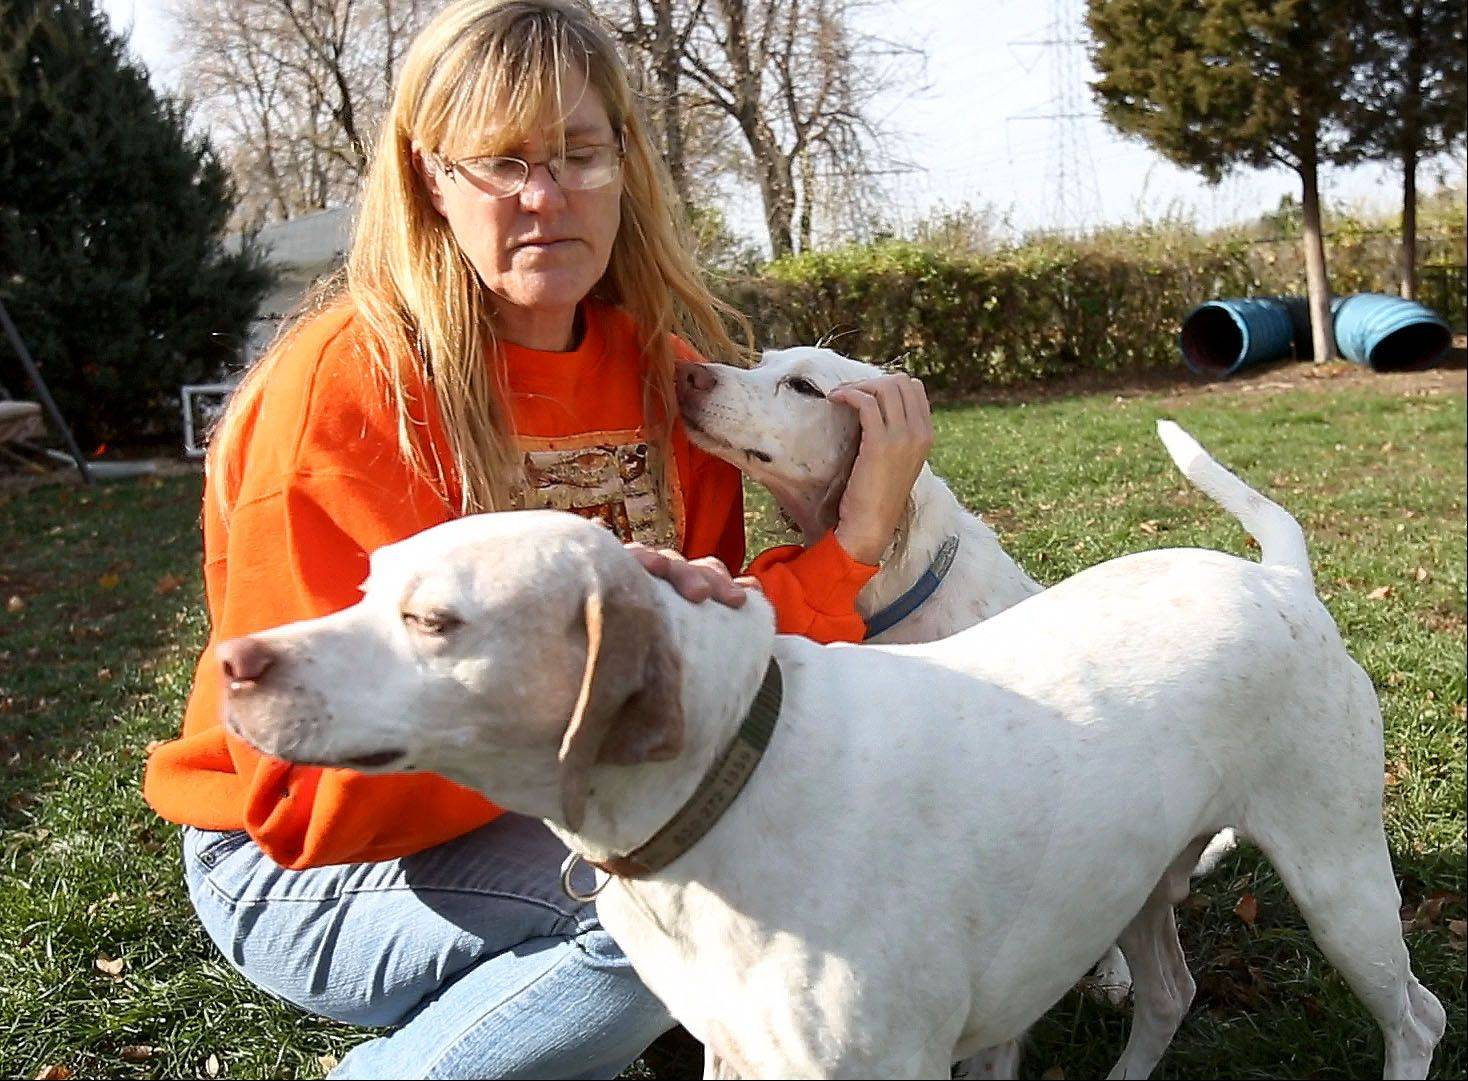 Wood Dale officials say they�re dropping a complaint against Lisa Spakowski, a rescue leader who is caring for five dogs � two more than allowed by code.